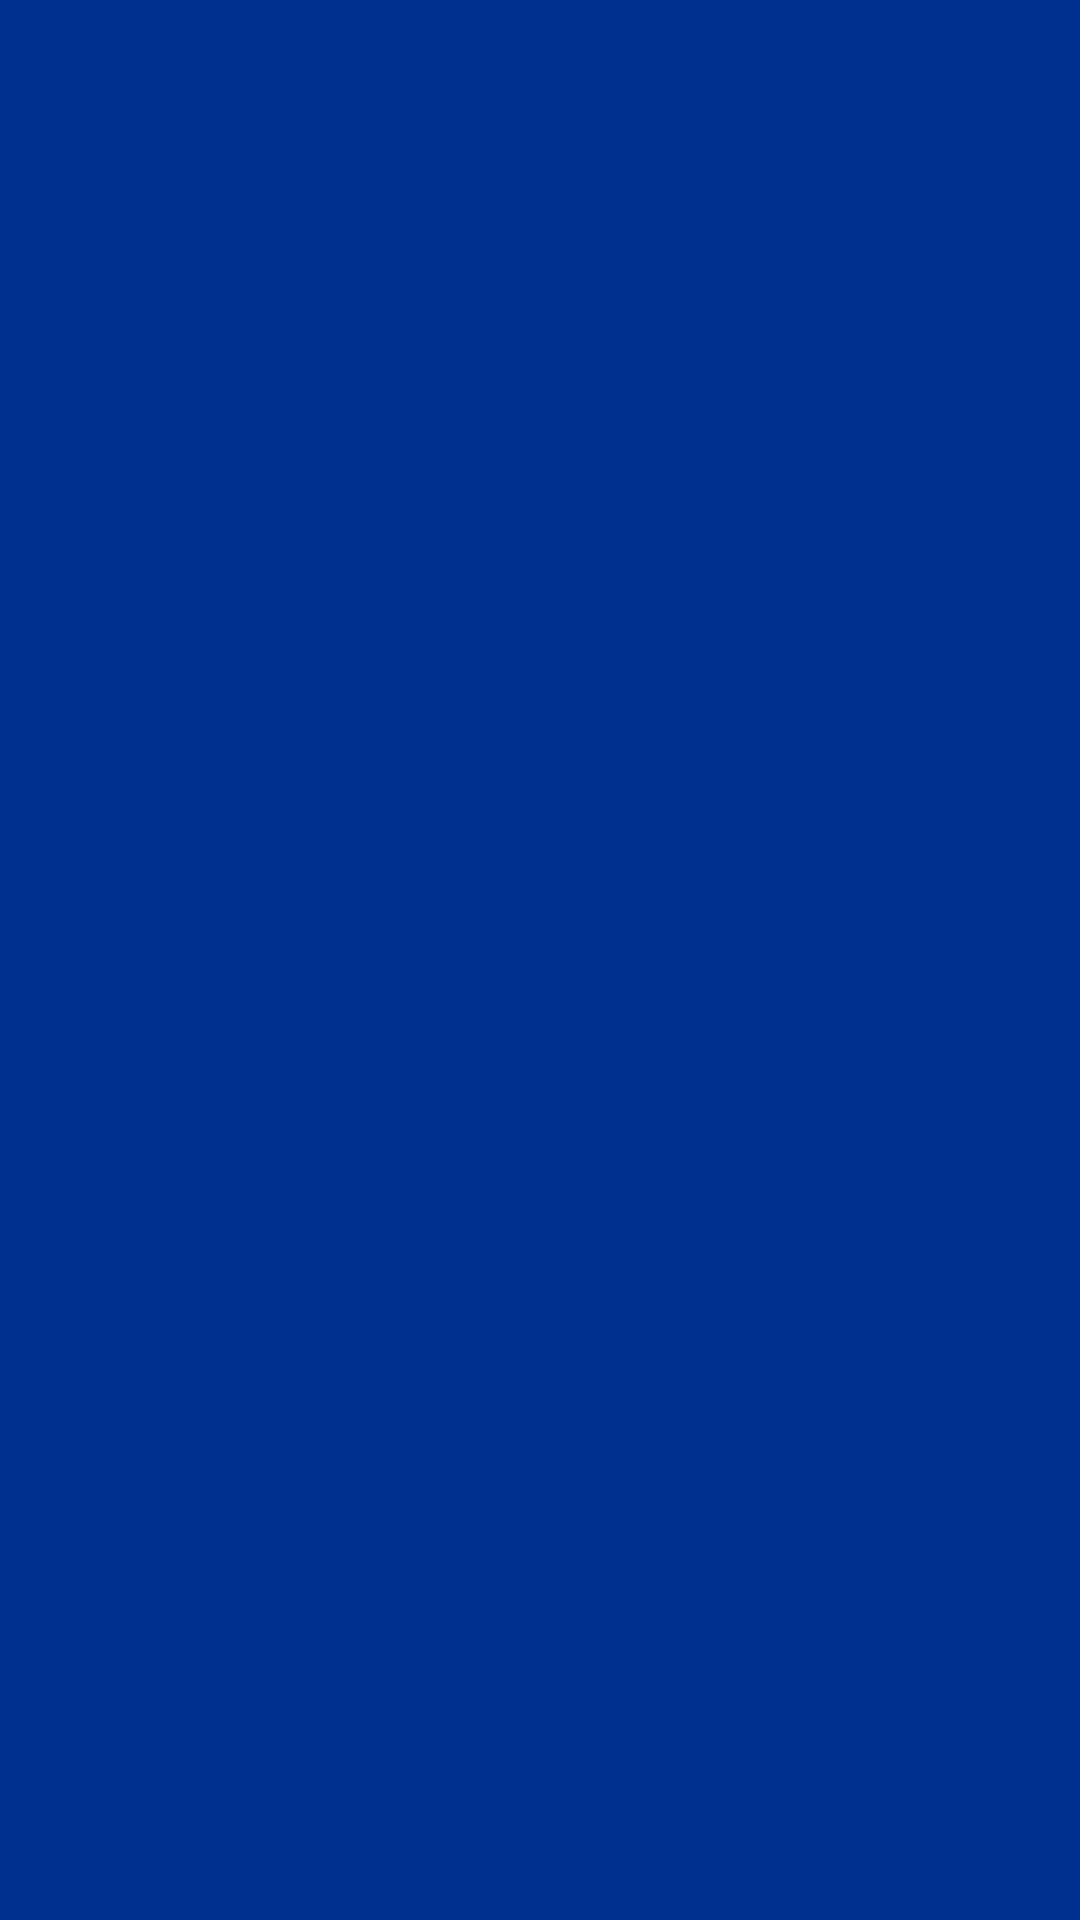 1080x1920 Air Force Dark Blue Solid Color Background